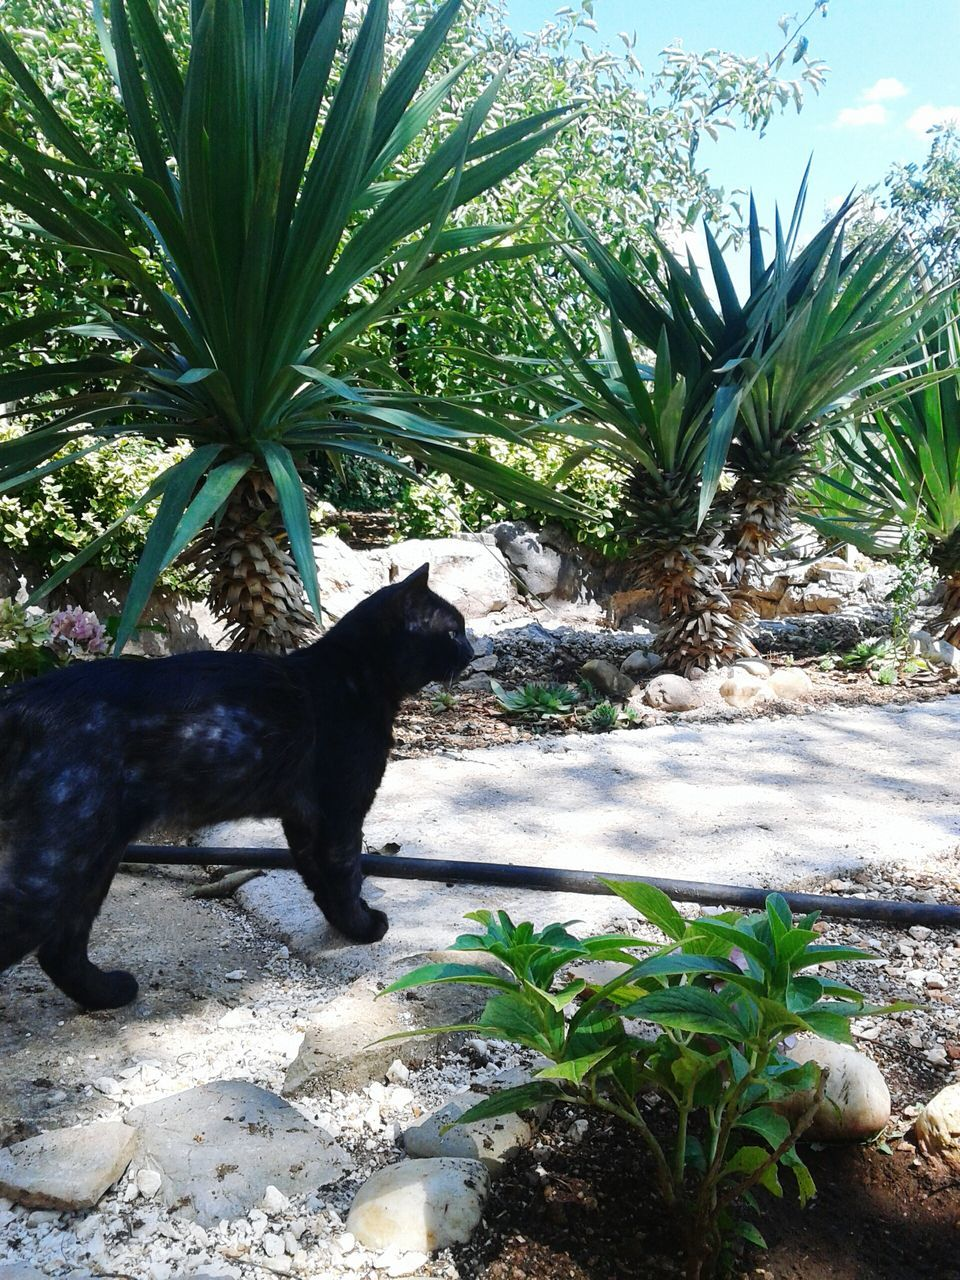 pets, one animal, plant, animal themes, domestic animals, mammal, growth, leaf, nature, domestic cat, no people, outdoors, dog, day, green color, sitting, tree, palm tree